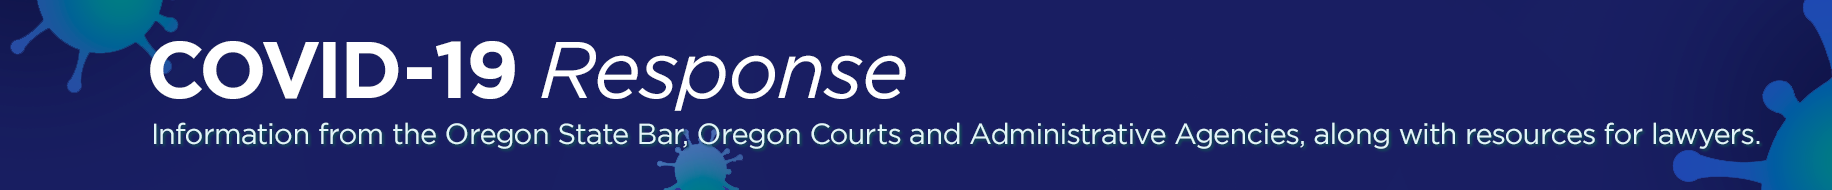 COVID-19 Info from OSB, Courts, Agencies and Resources for Lawyers